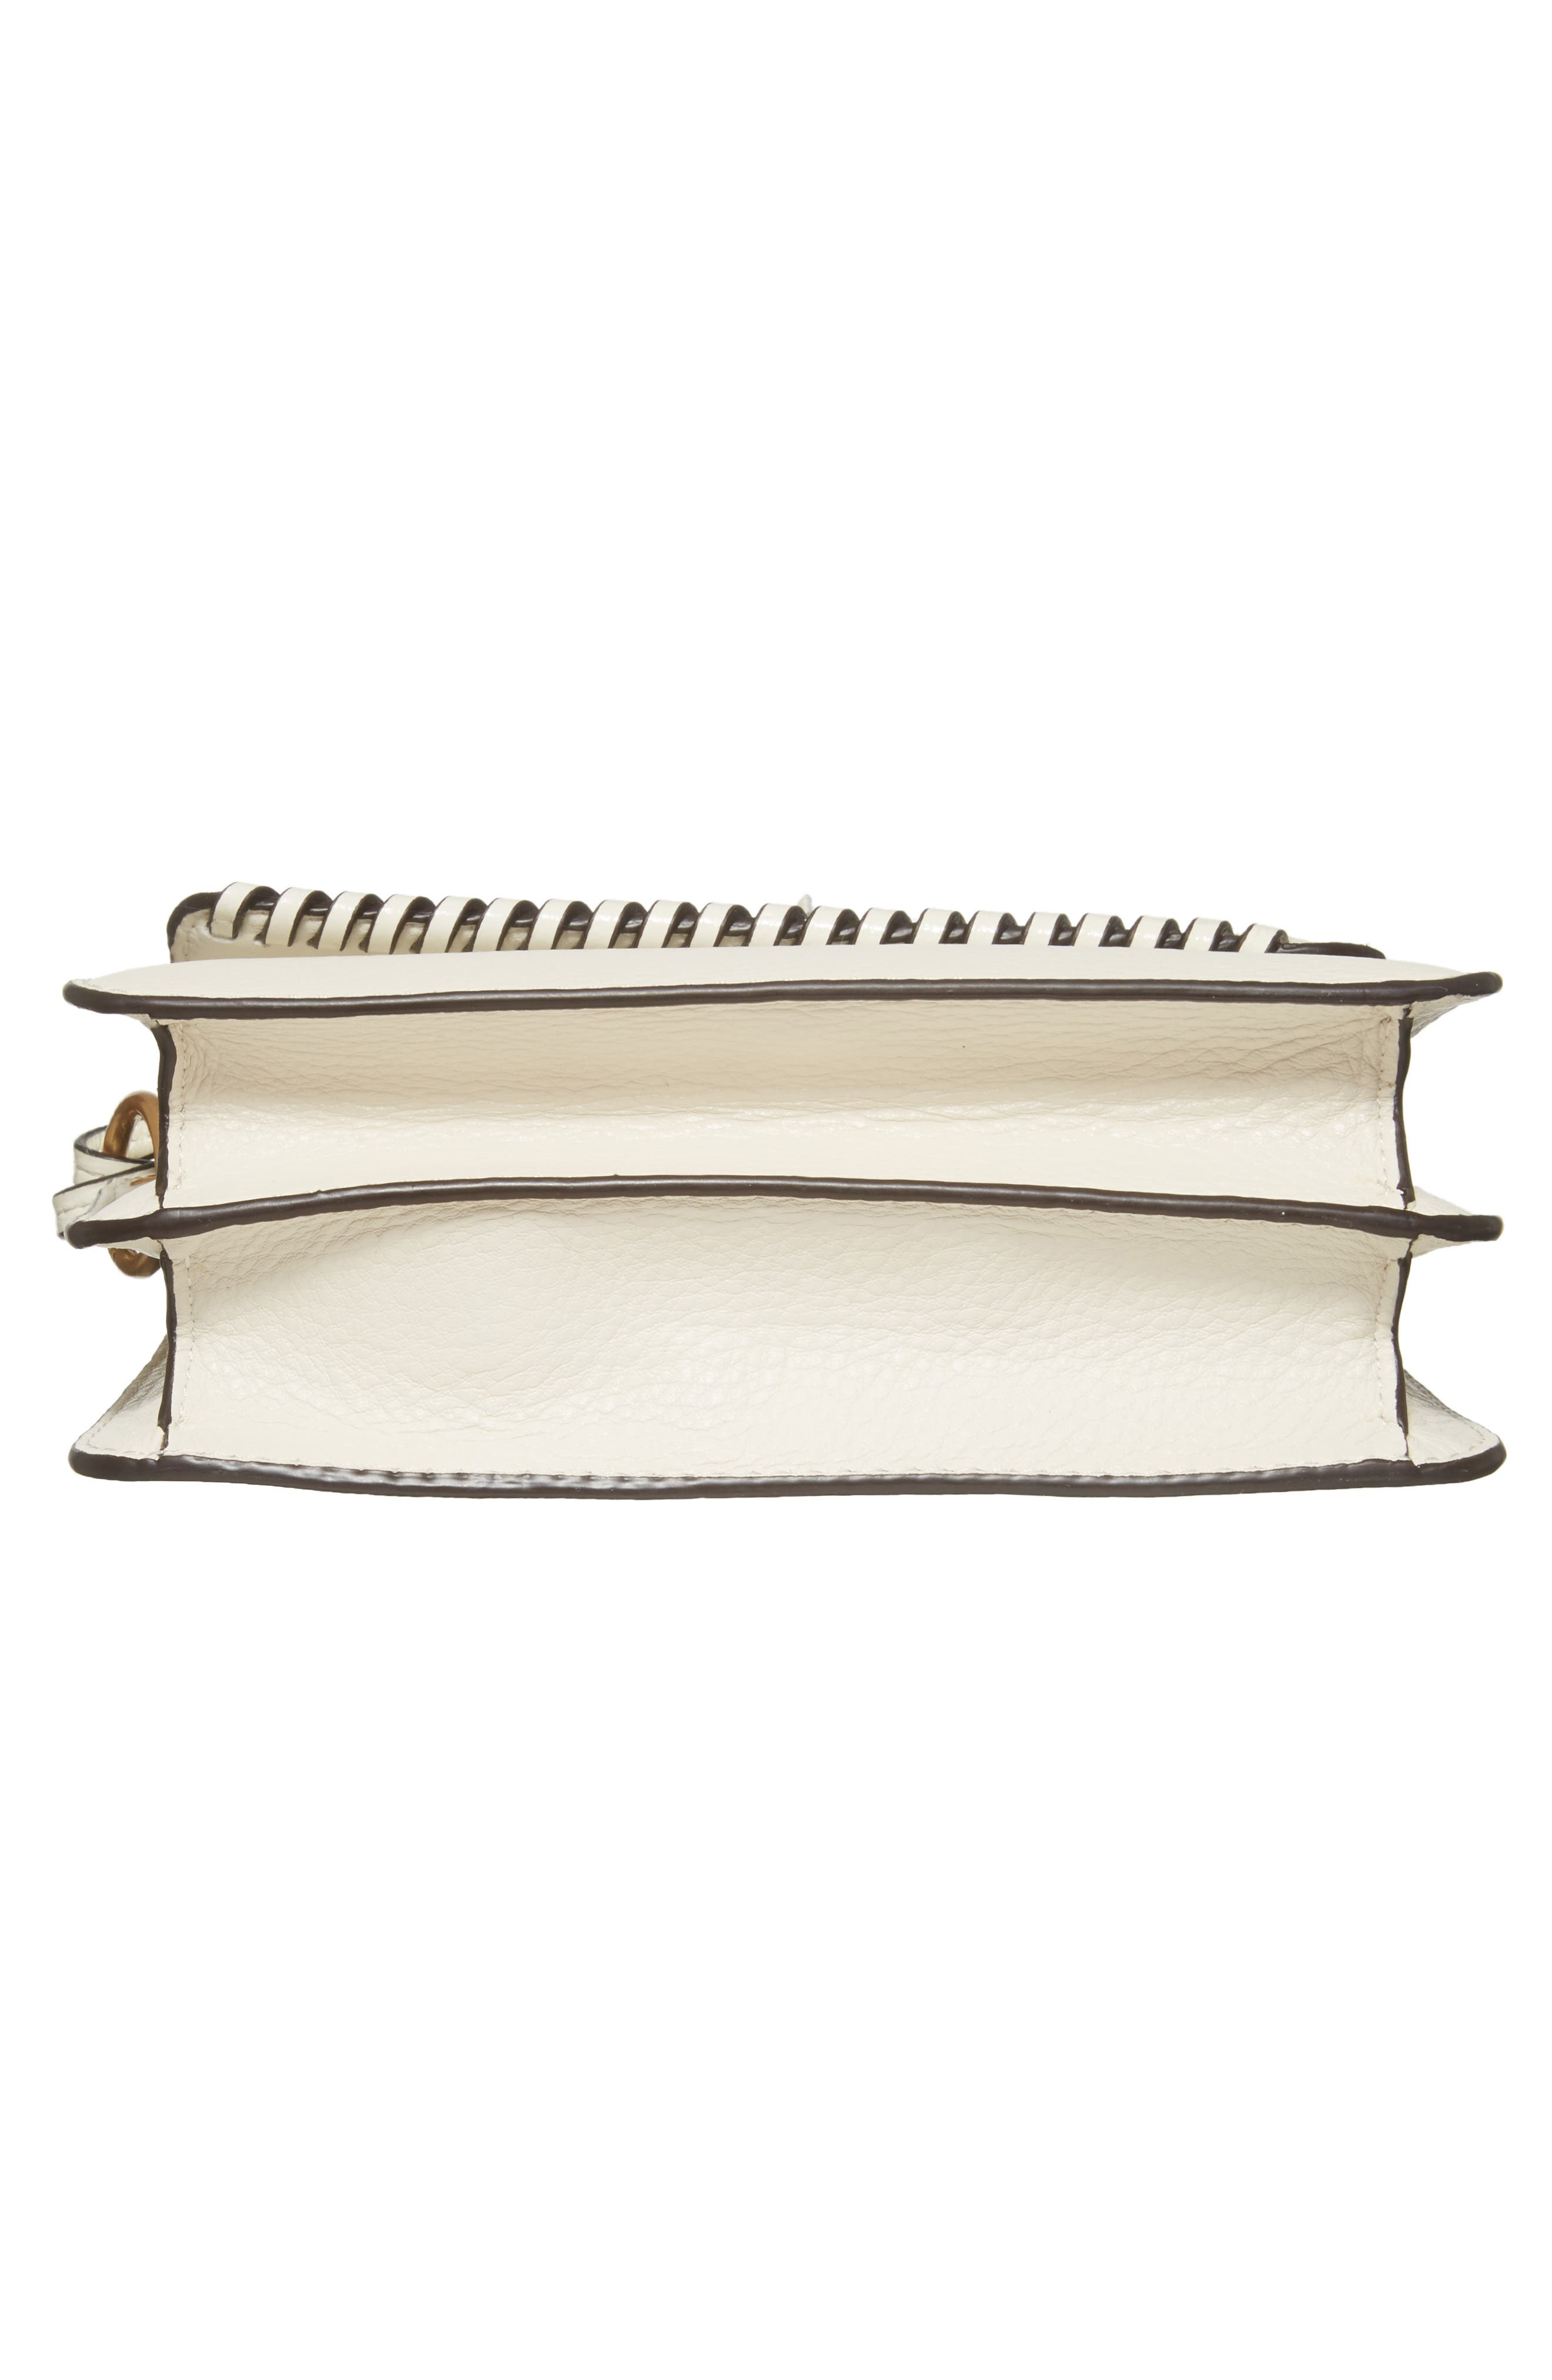 McGraw Whipstitch Leather Crossbody Bag,                             Alternate thumbnail 6, color,                             New Ivory